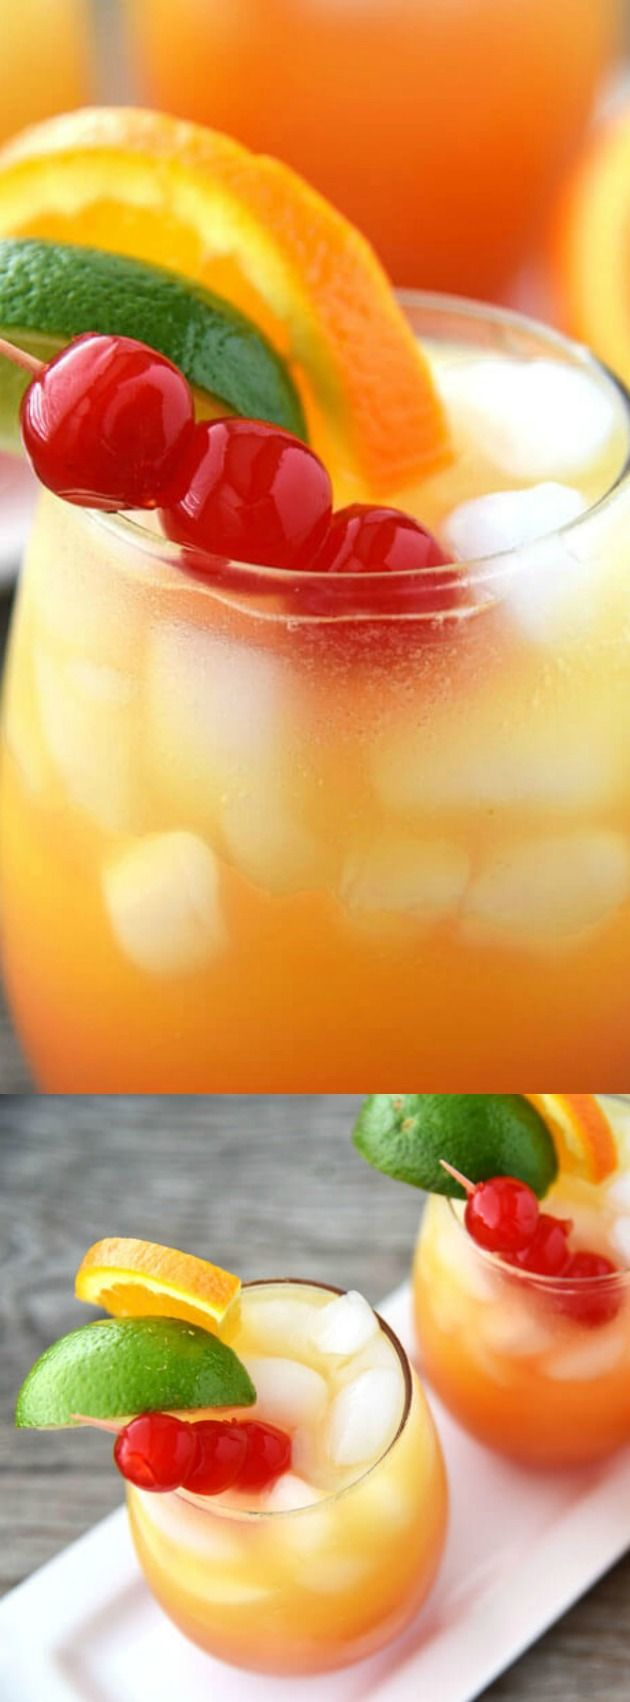 This Mai Tai Mocktail from Cupcake Diaries is a colorful and refreshing drink that the whole family can enjoy! Pineapple, orange, lemon-lime soda and more combine to create one spring and summer drink that everyone will love!